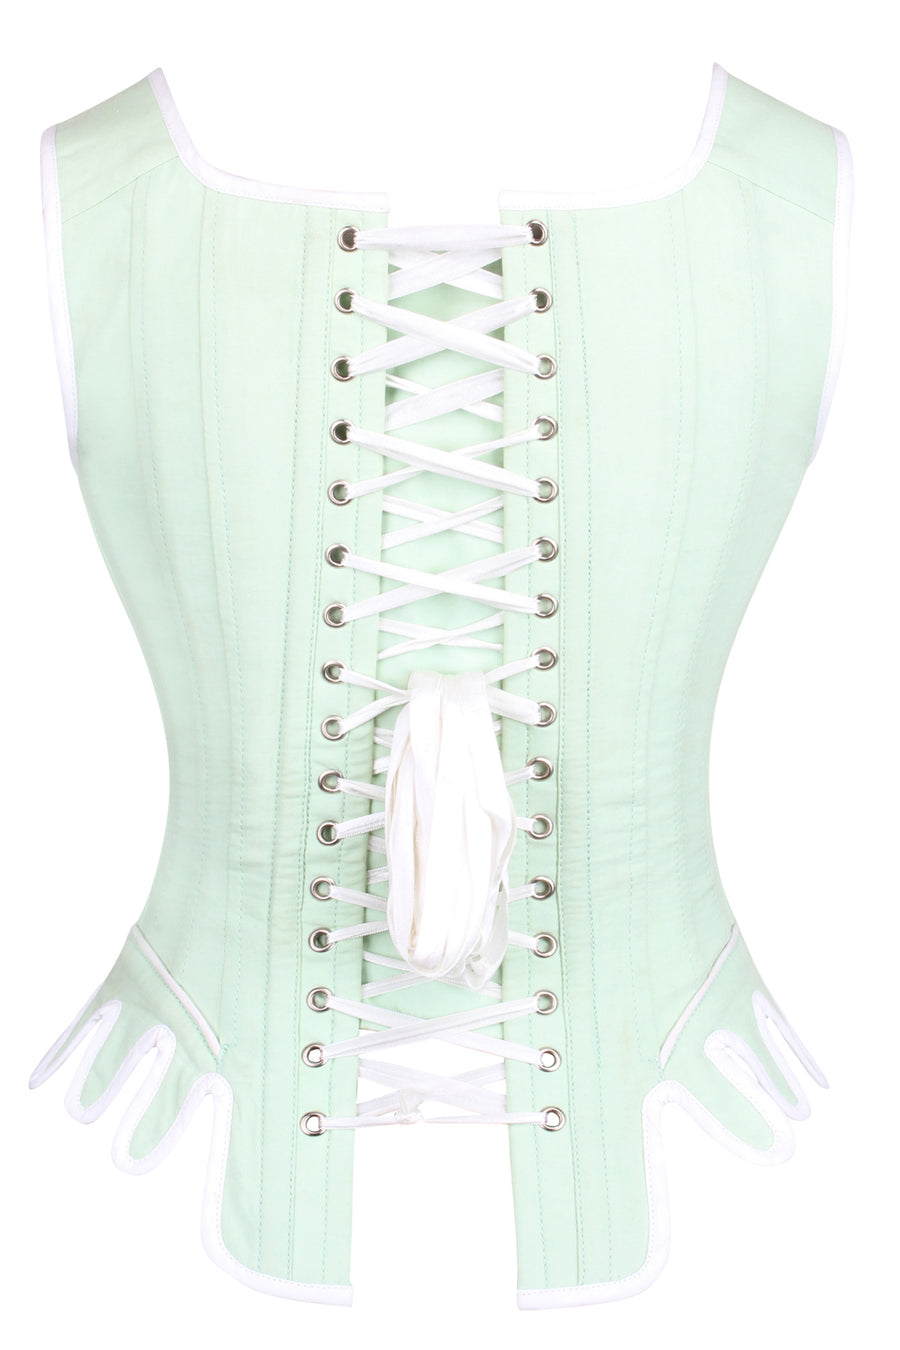 Historically Inspired Spearmint Corset top